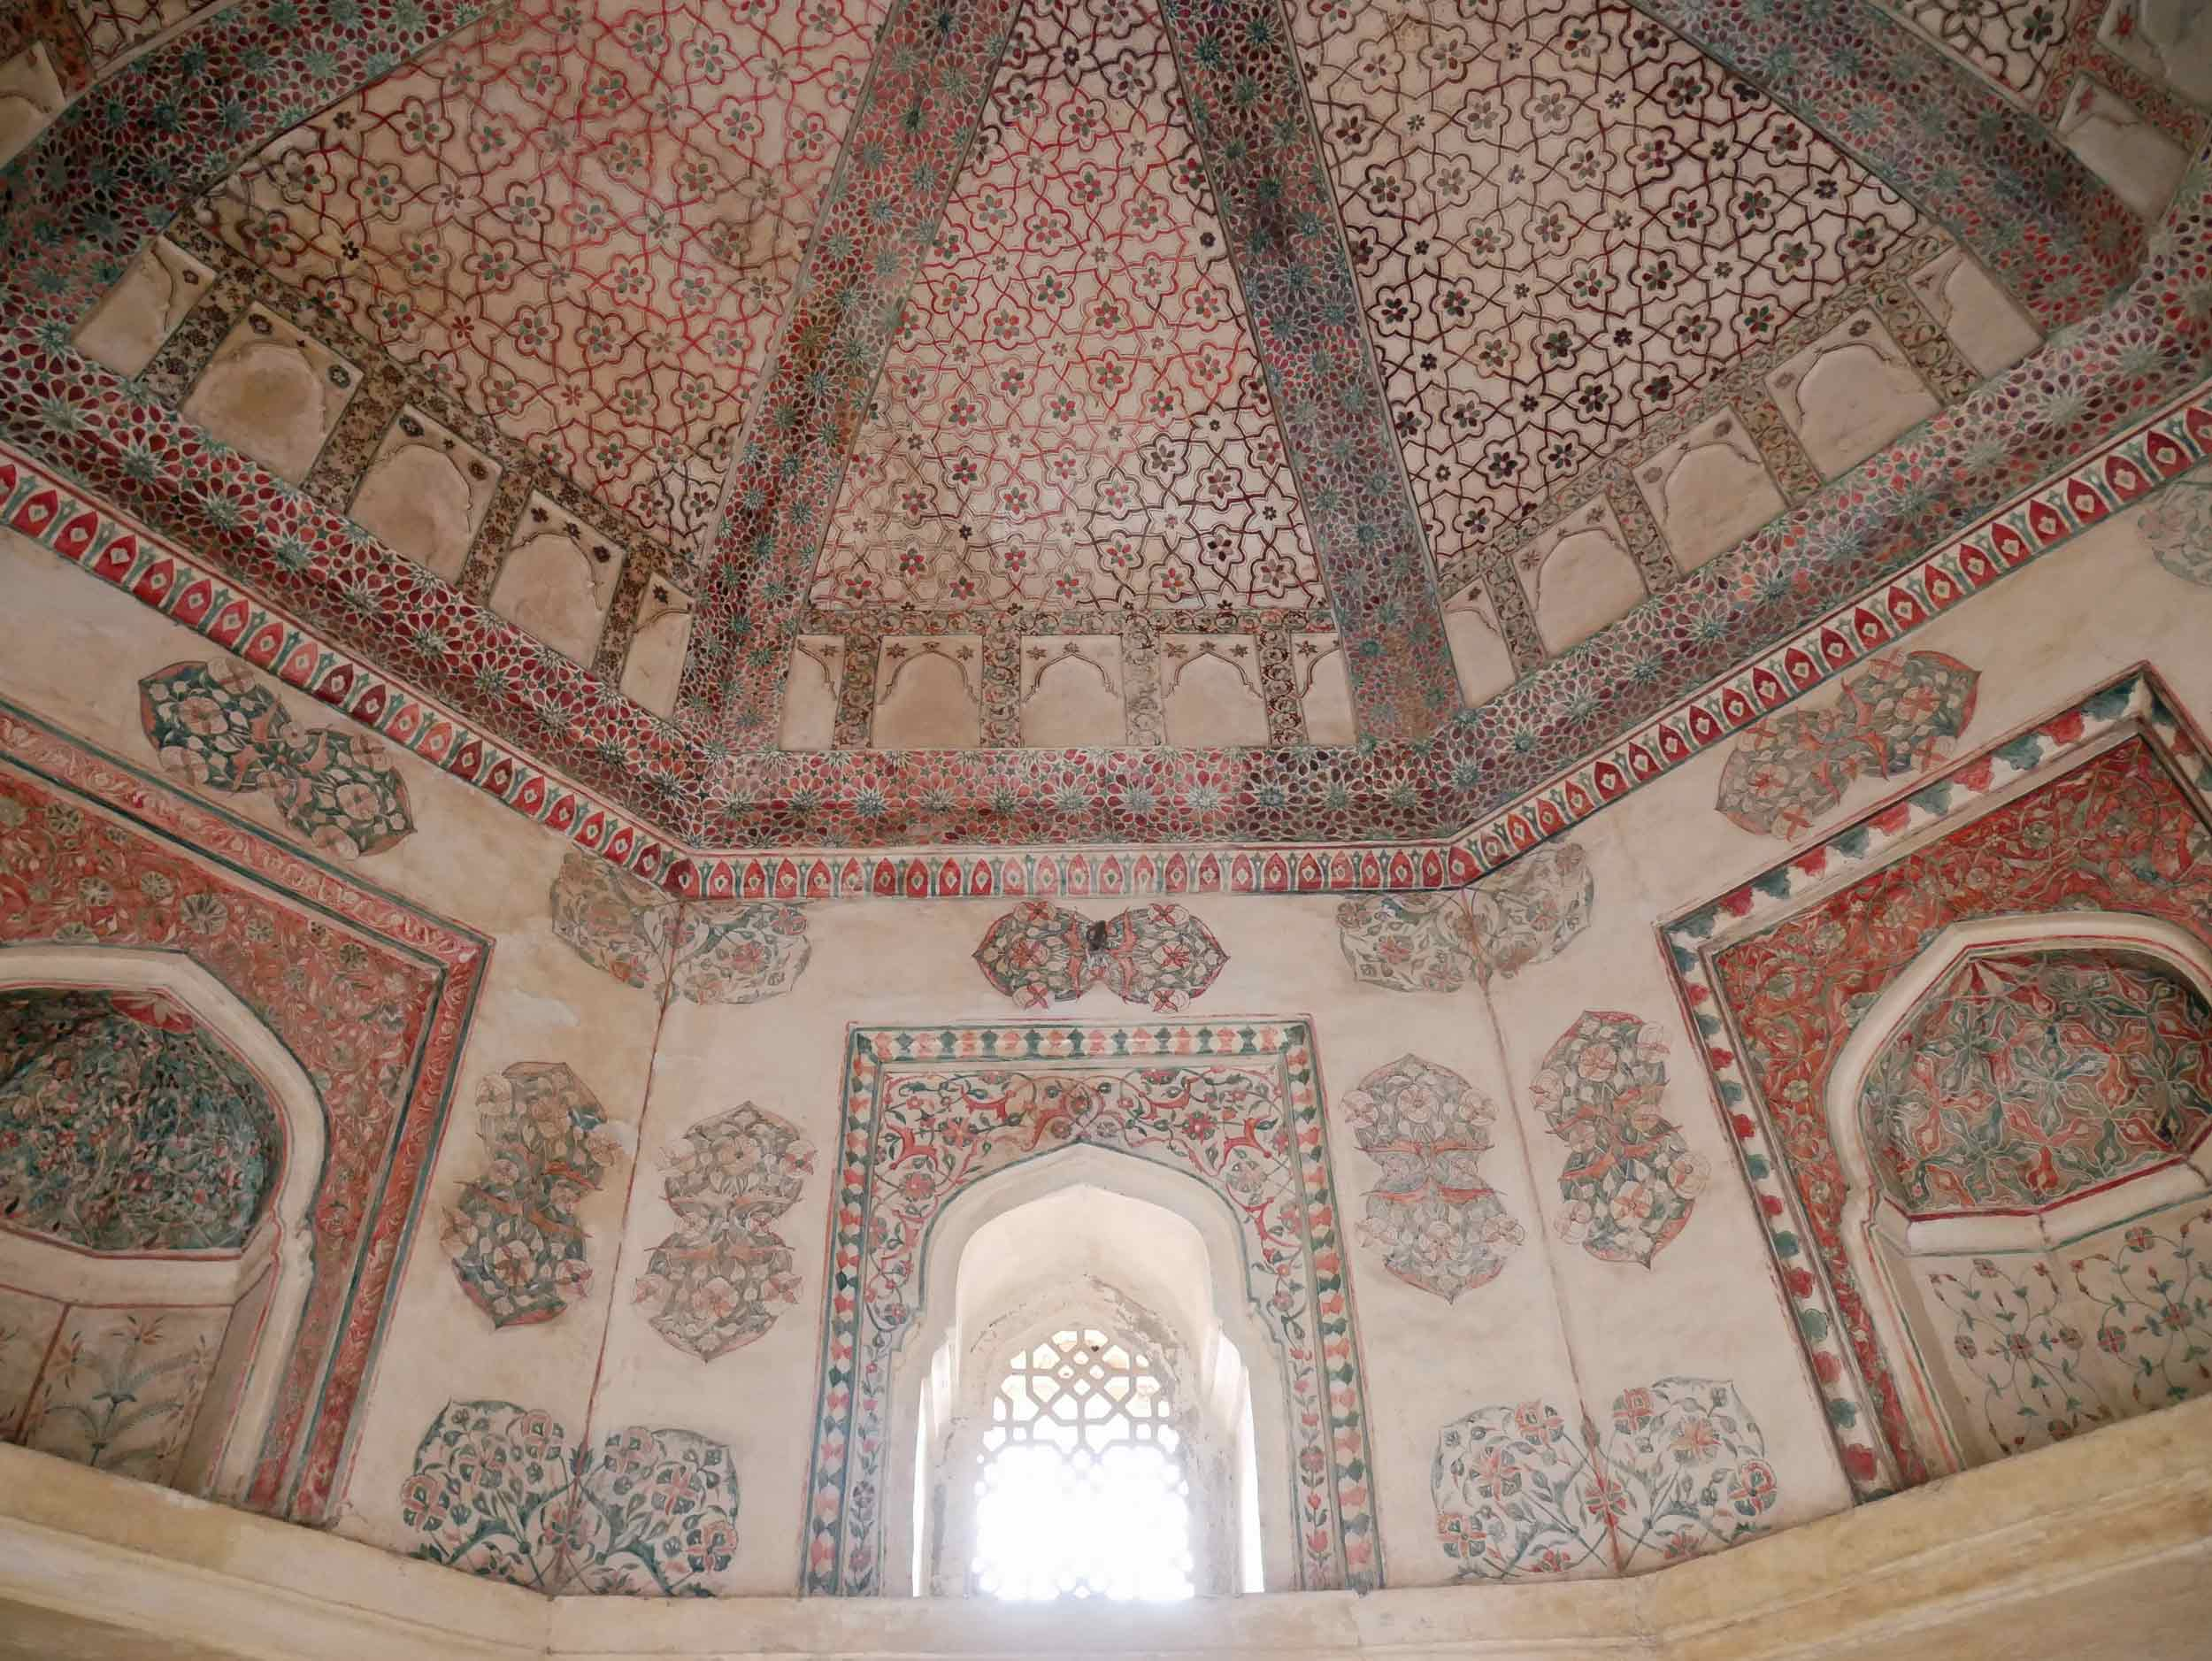 Elegant, intricate design elements in a blend of Rajput and Hindu style can be found throughout the palace.